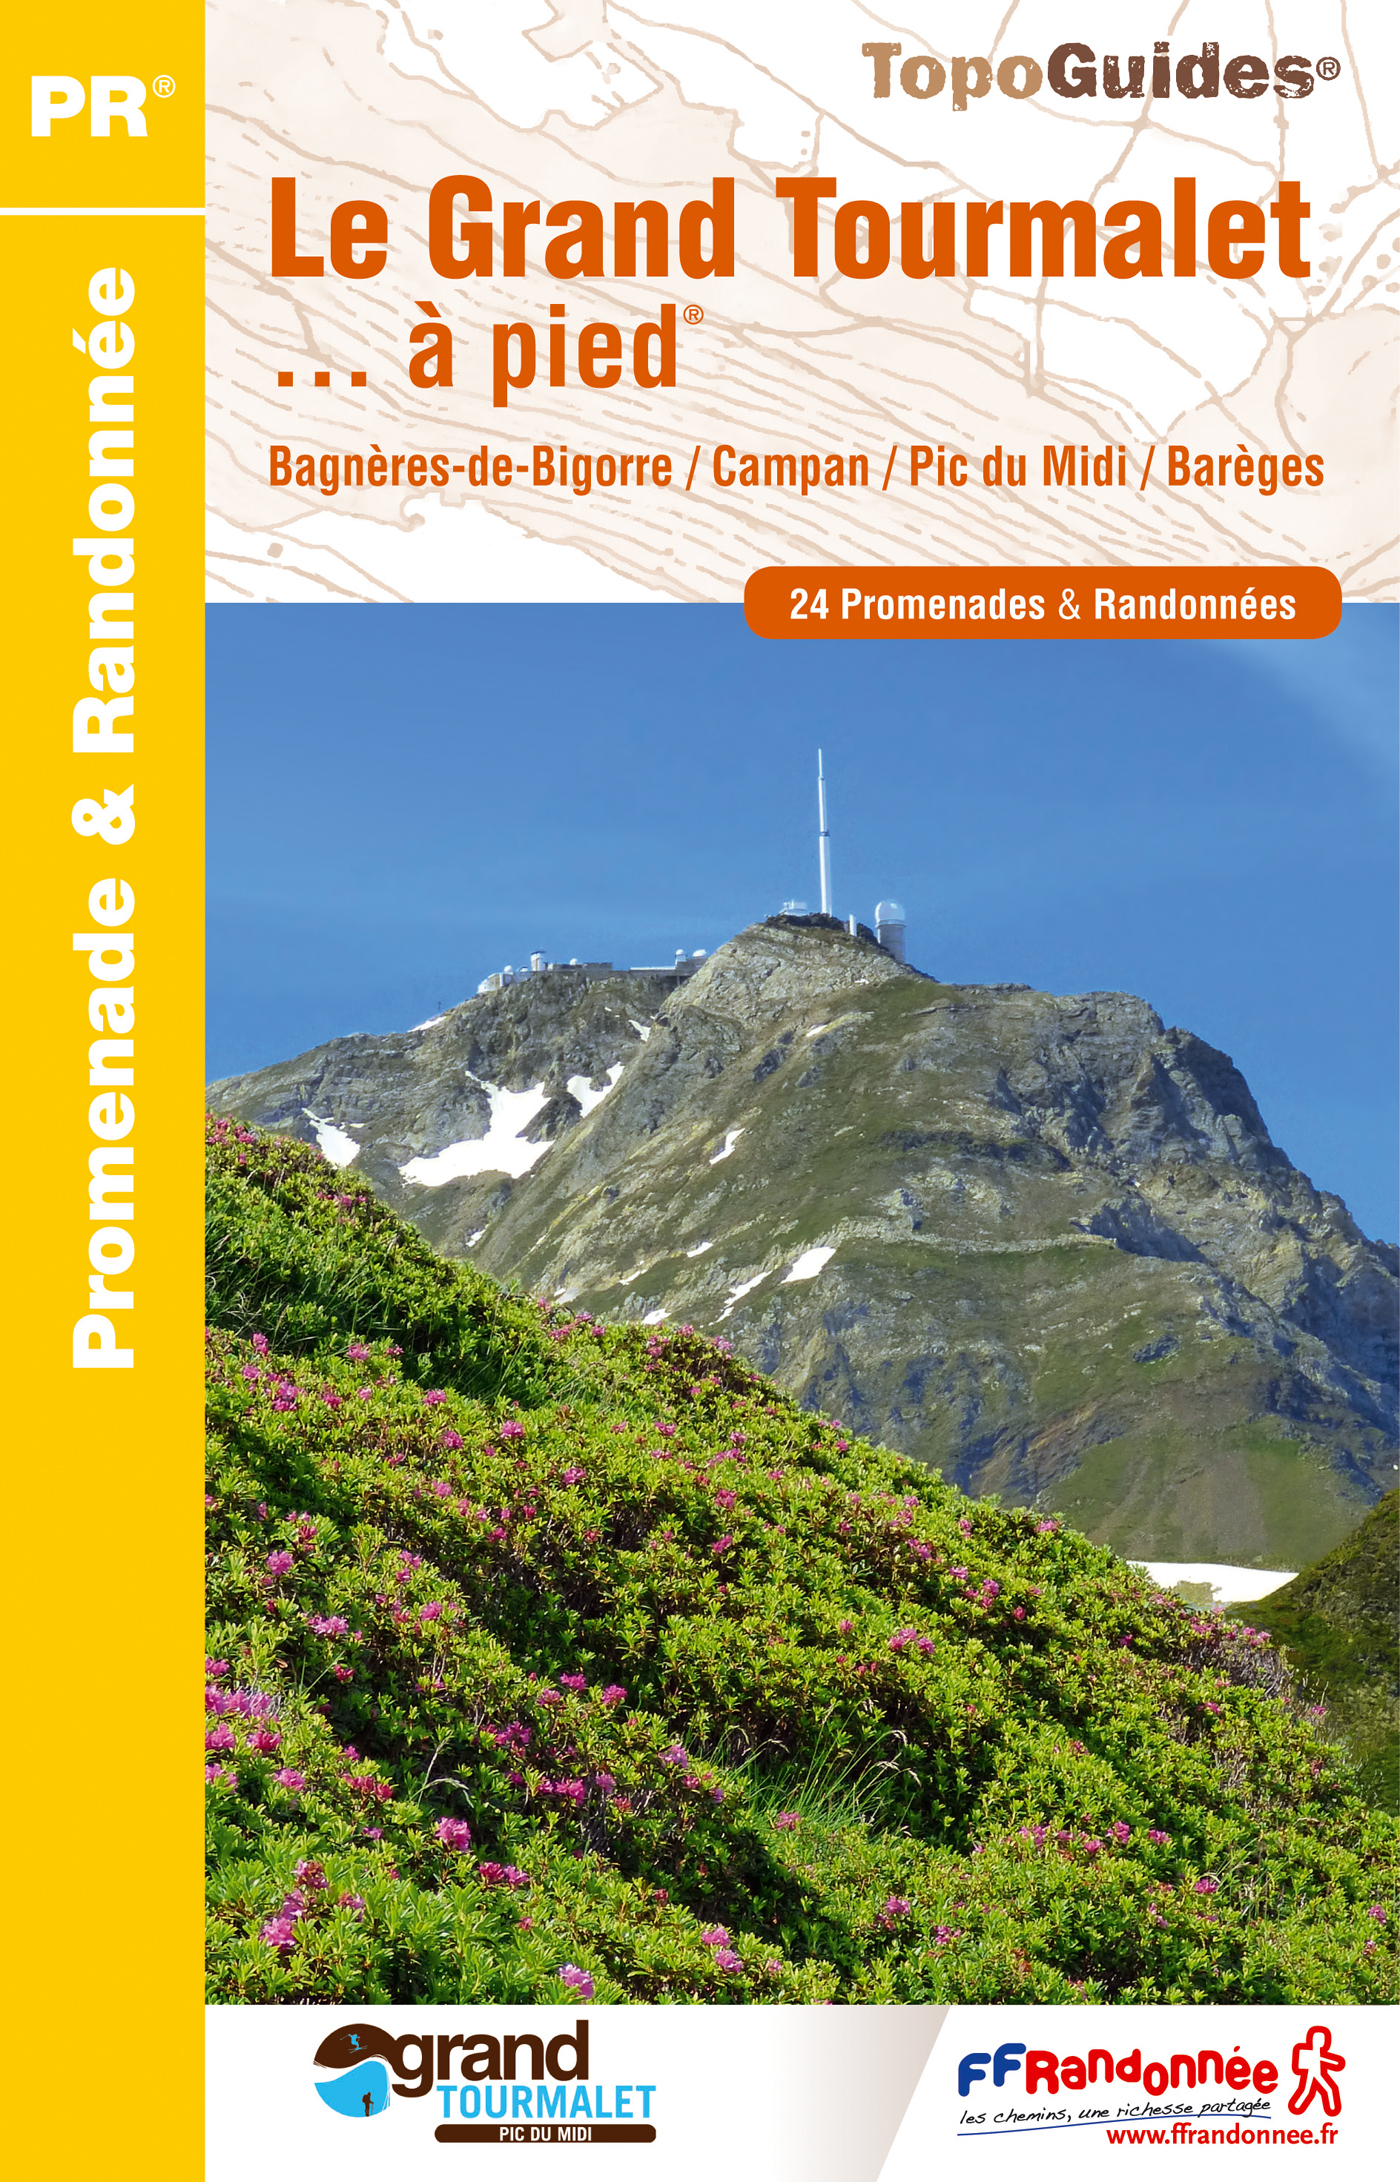 GRAND TOURMALET ET VALLEES A PIED NED 2016 - 65 - PR - ST08